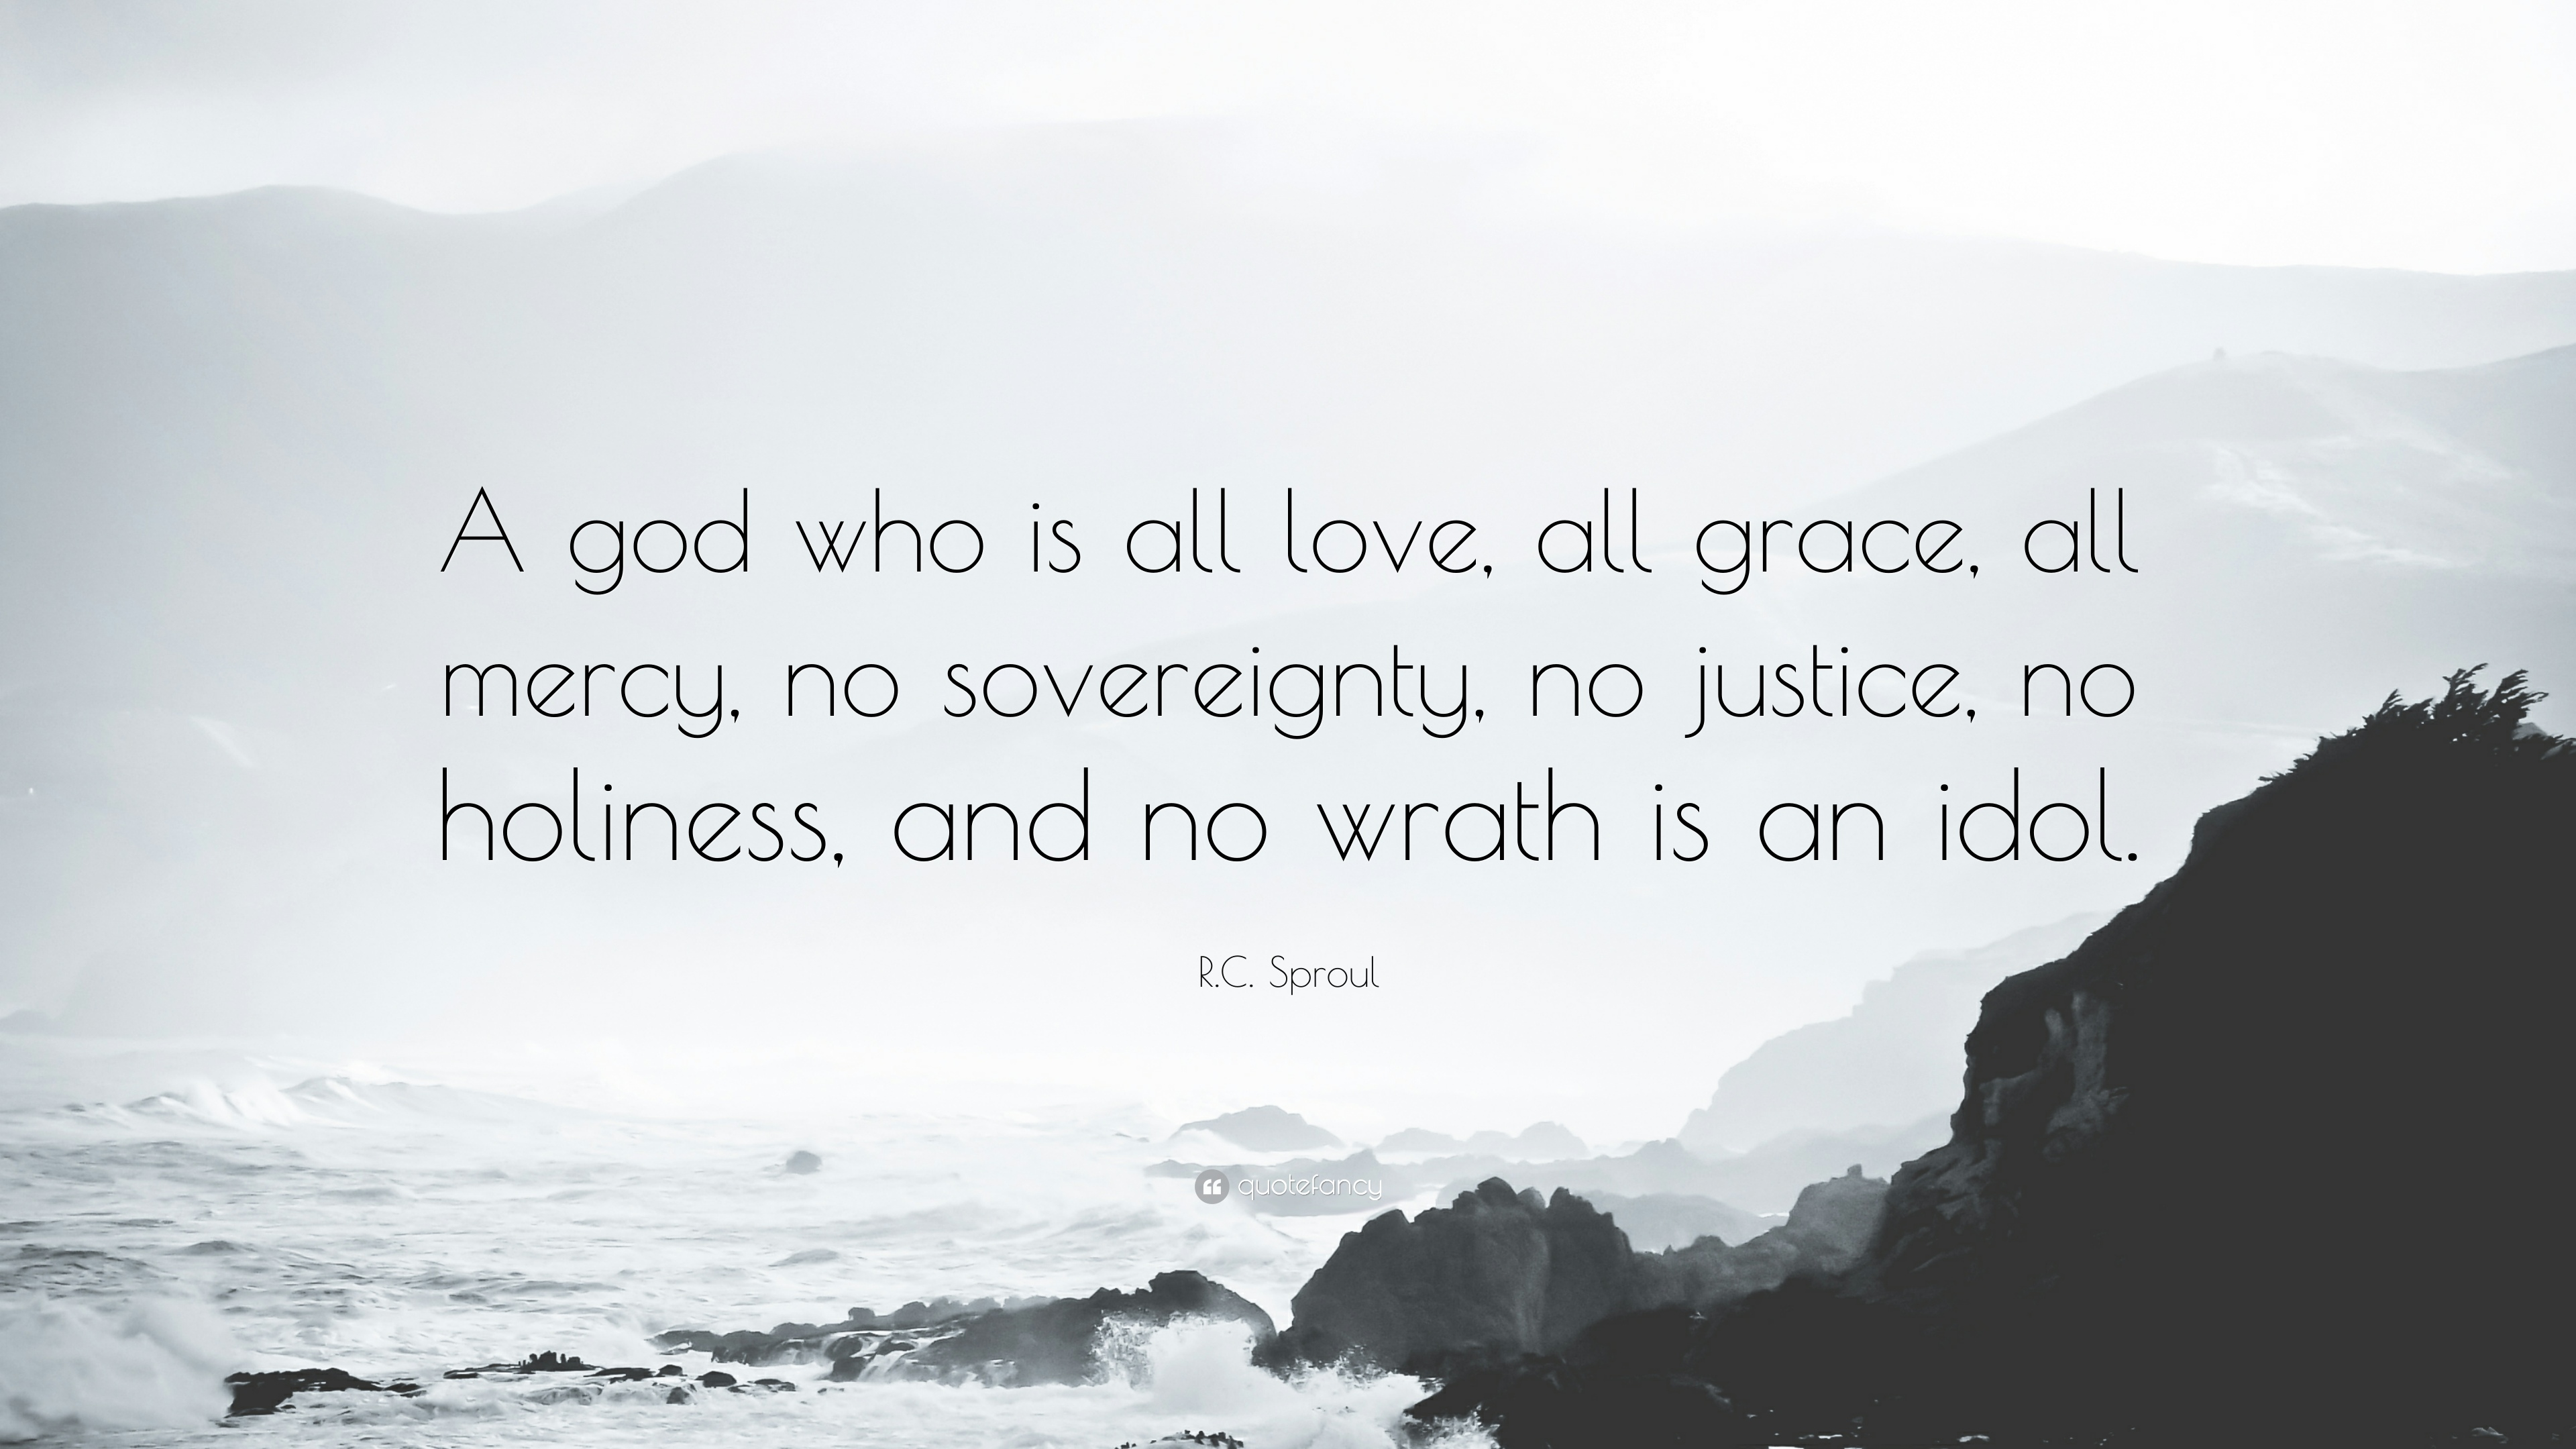 R c sproul quote a god who is all love all grace all